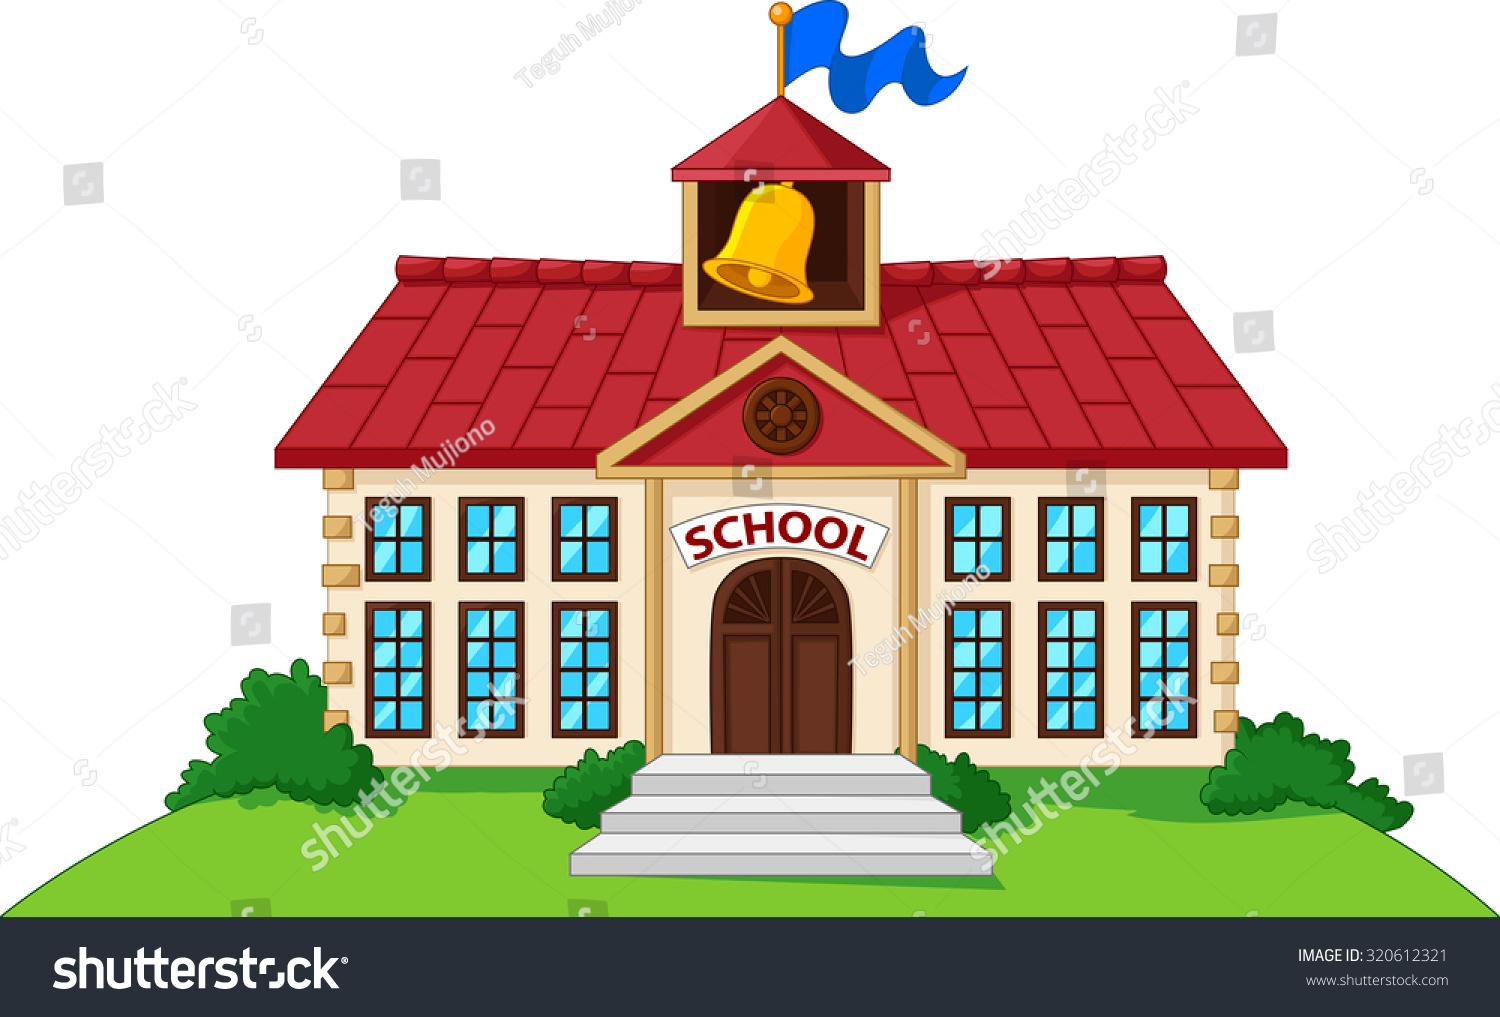 Patio House Cartoon School Building Pictures To Pin On Pinterest